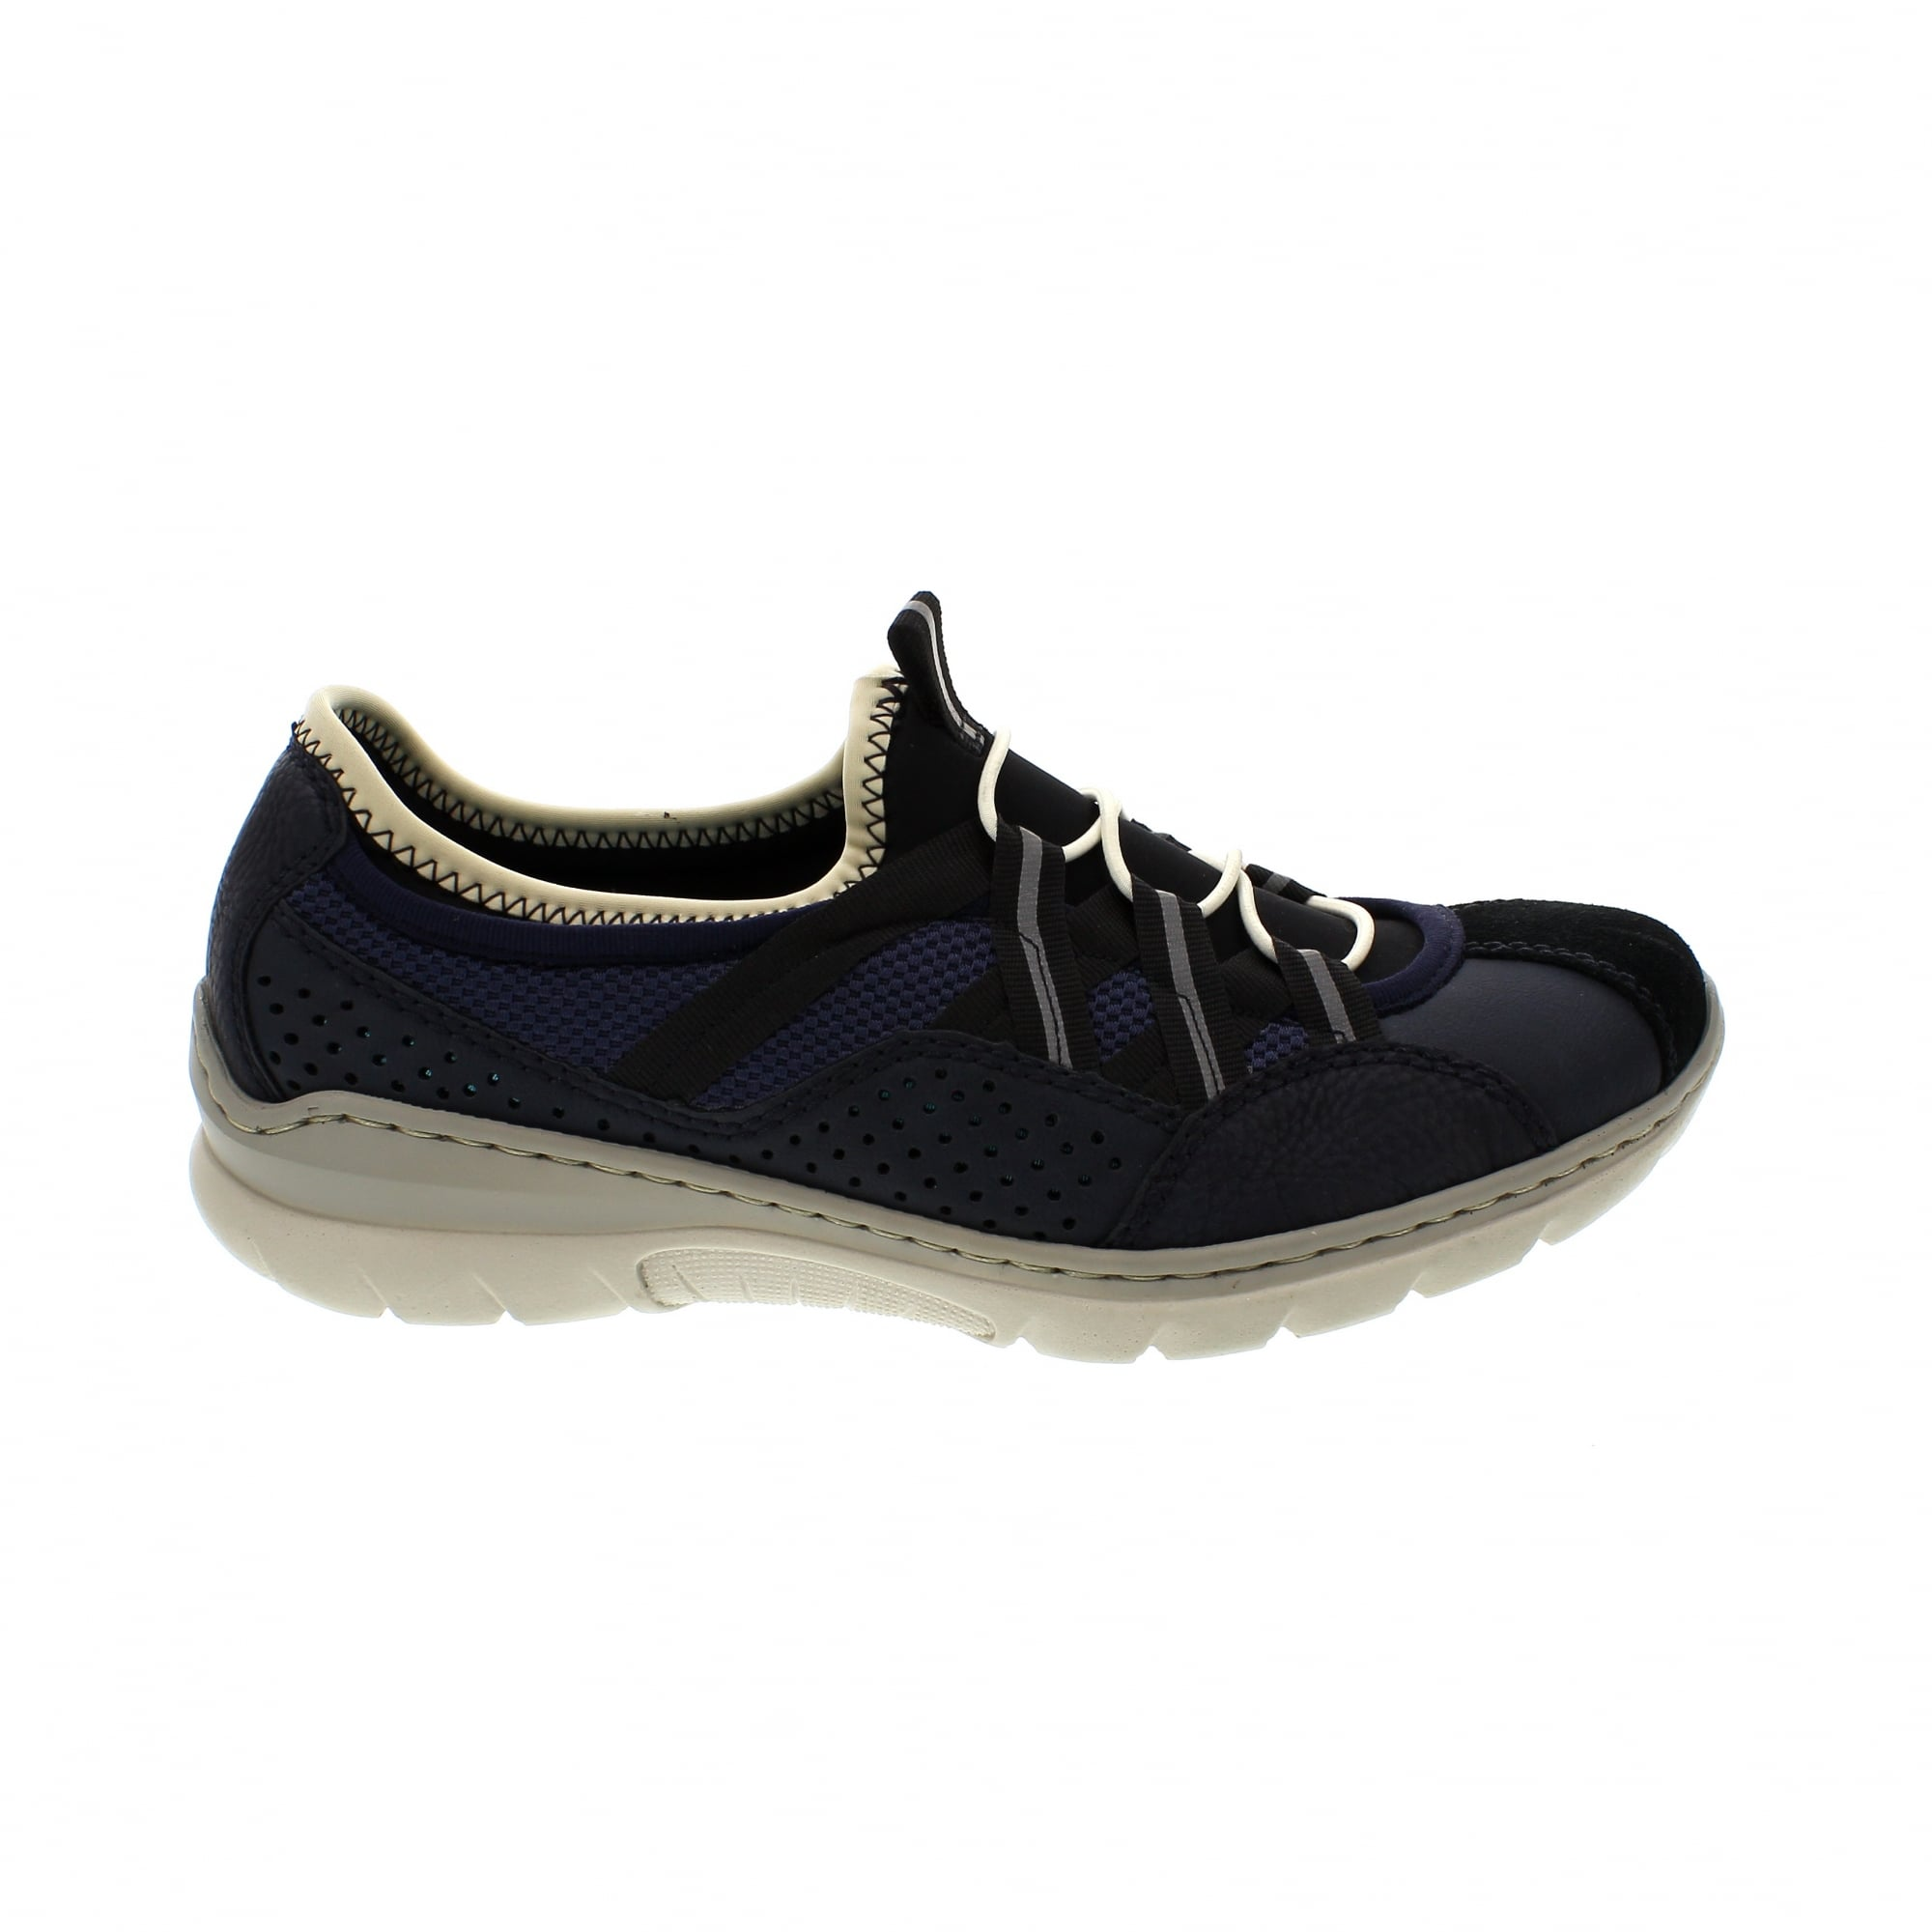 c3d82538626 Rieker L3256-14 Navy Suede Womens Slip On Trainers | Rogerson Shoes